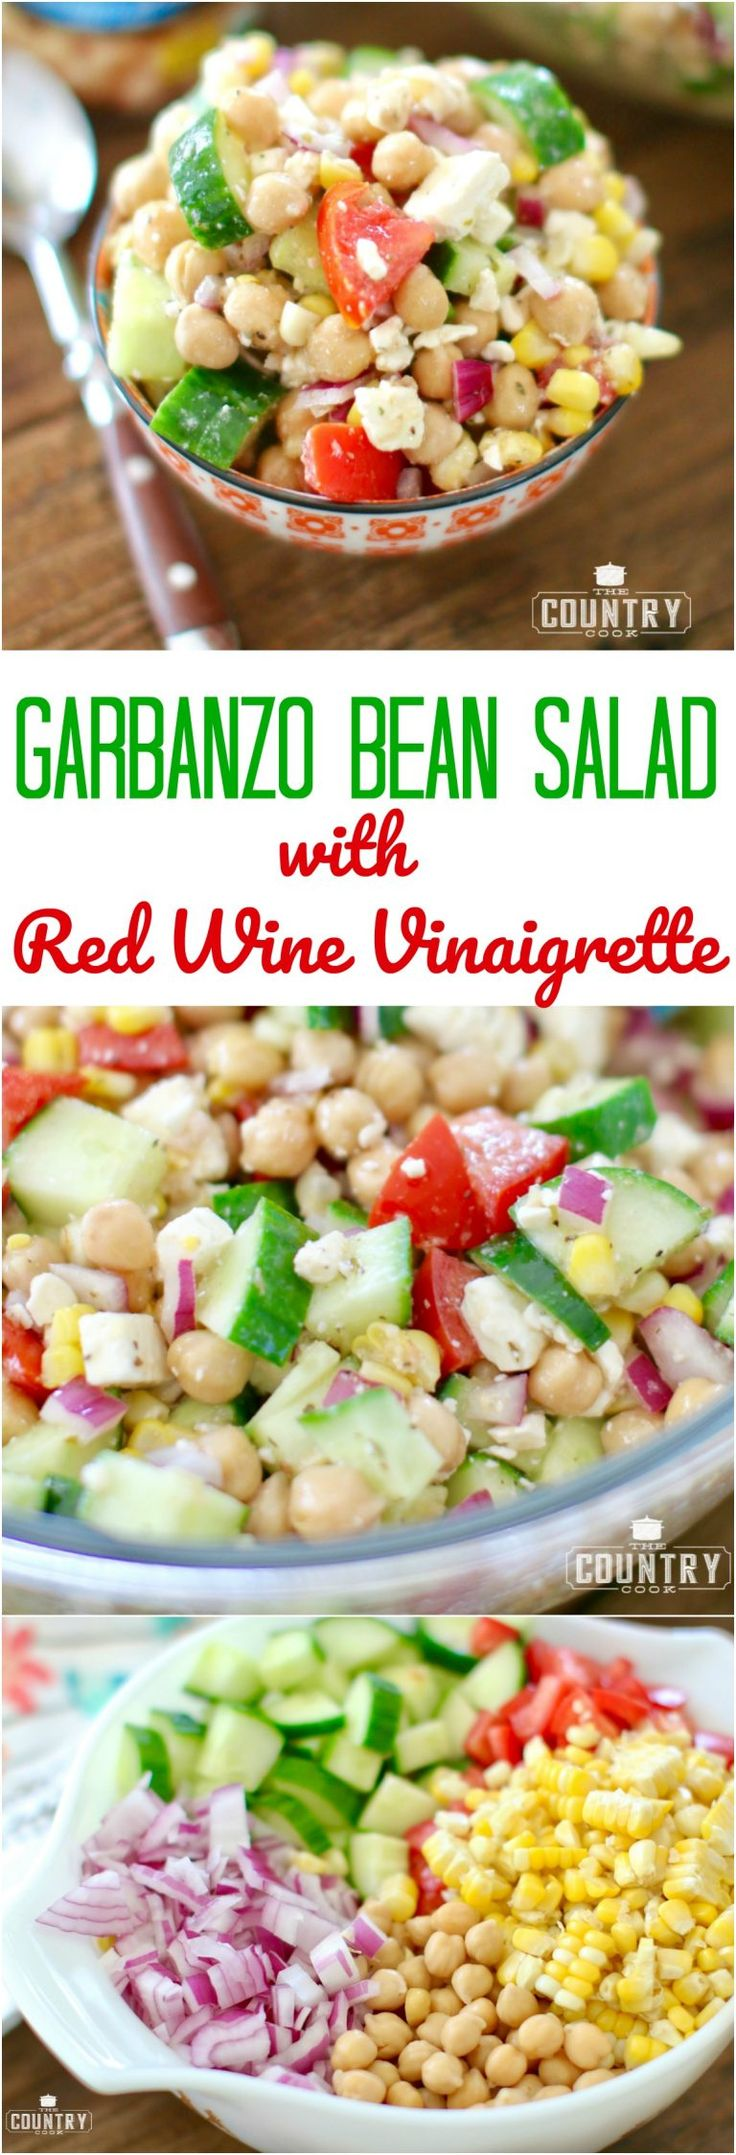 Garbanzo Bean Salad with Red Wine Vinaigrette recipe from The Country Cook with @bushsbeans #ad